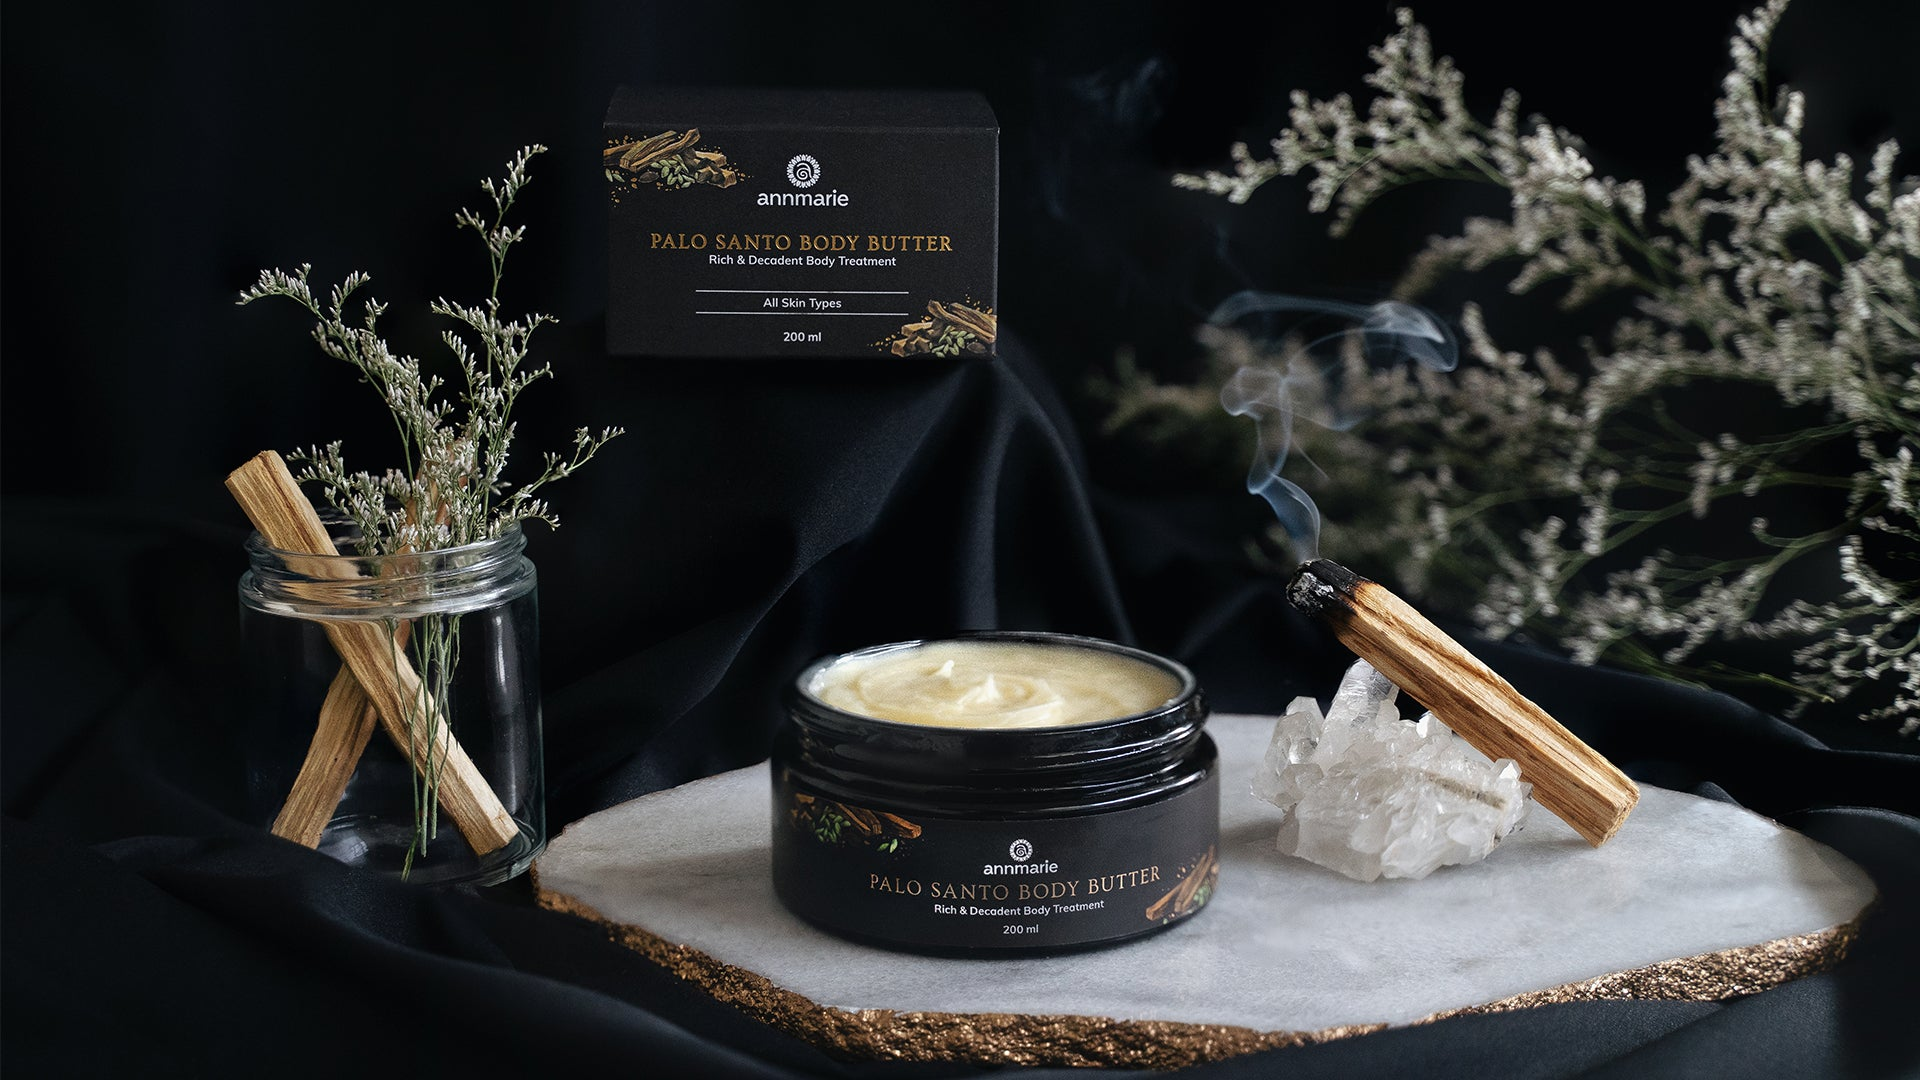 How to use Palo Santo Body Butter - Rich & Decadent Body Treatment (200 ml)